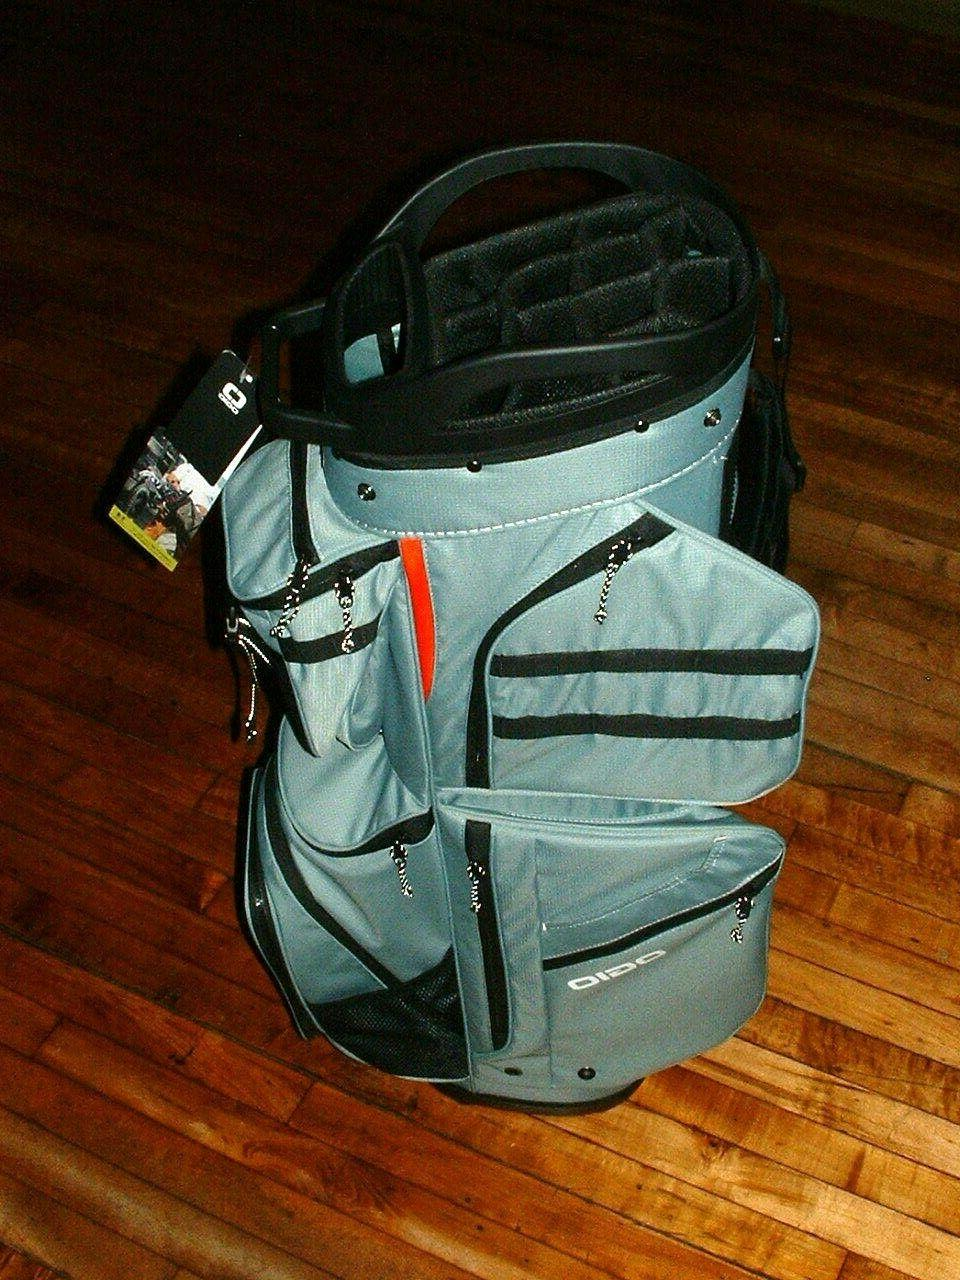 OGIO Bag 14, Great Looking!